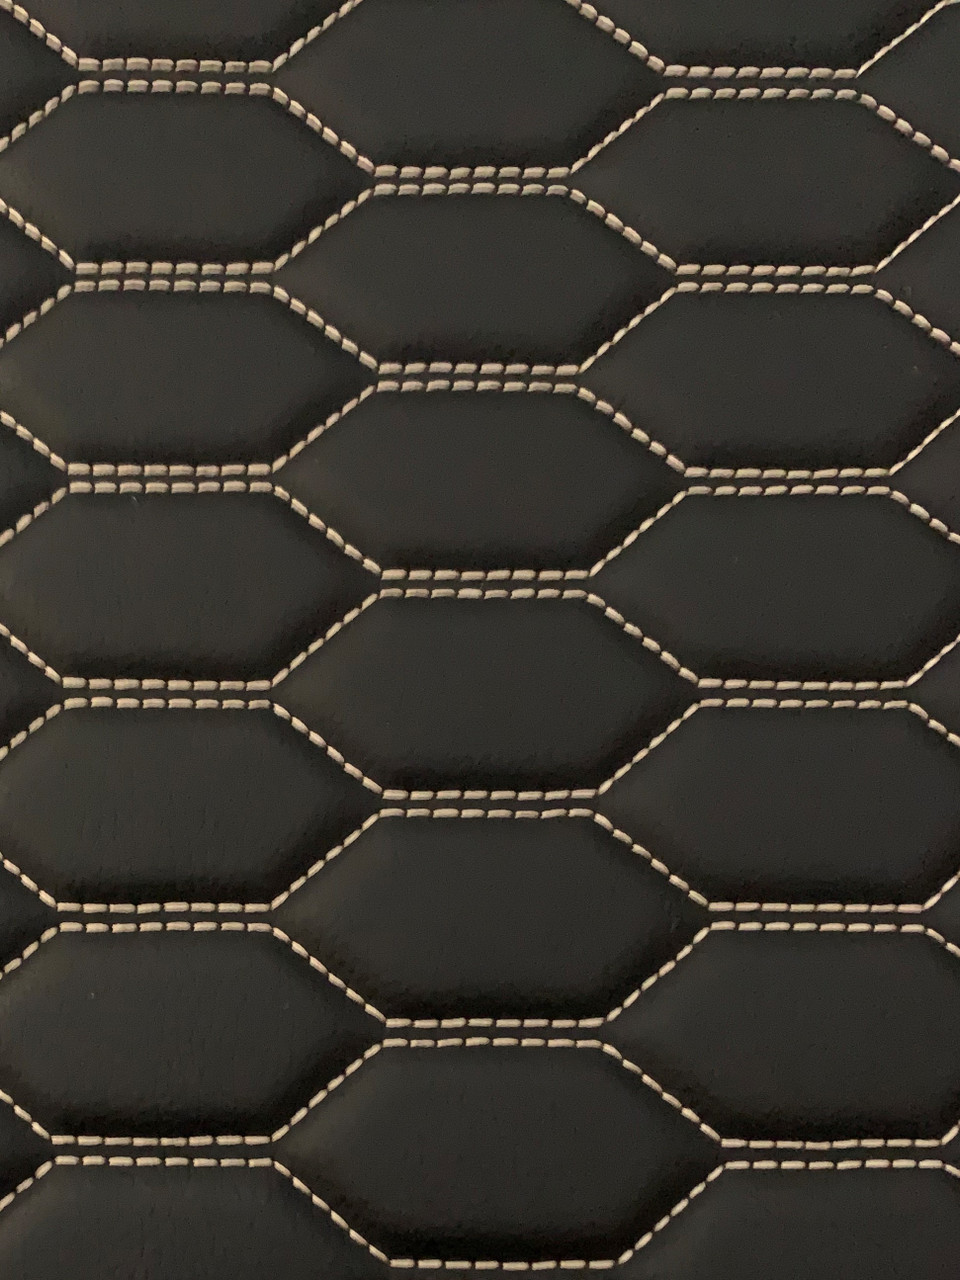 Real quilted automotive grade black vinyl with white-gold stitching